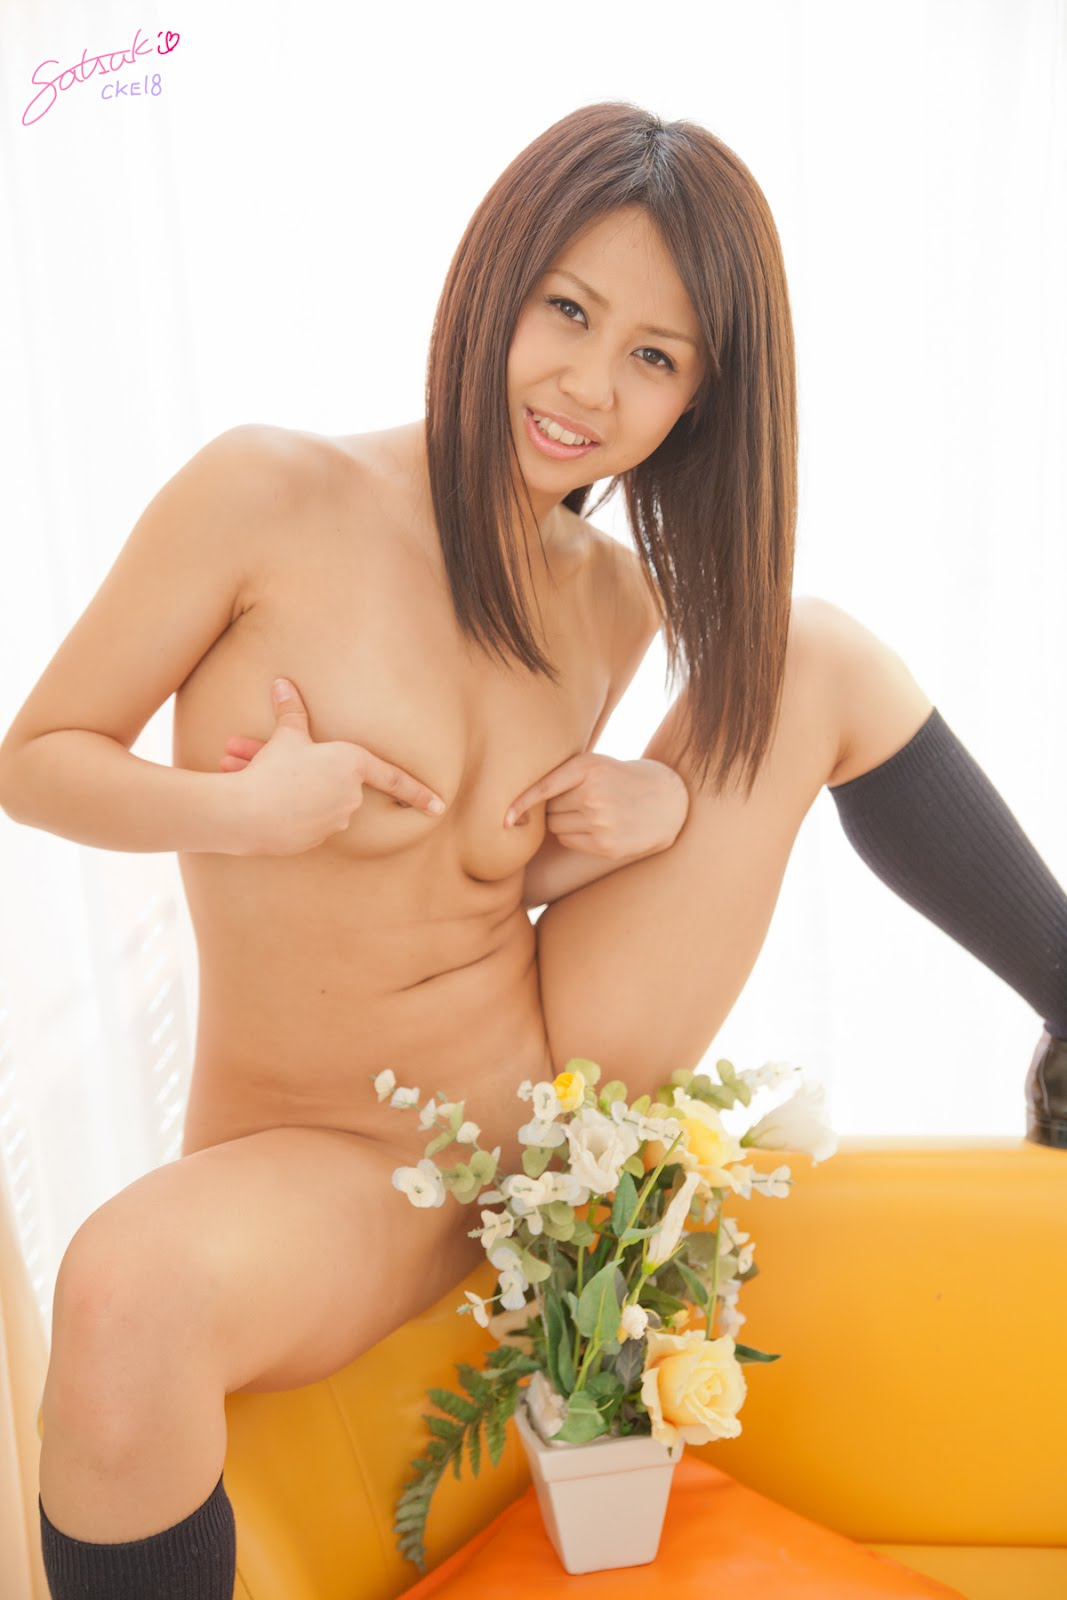 Nude Asian Teen Gallery